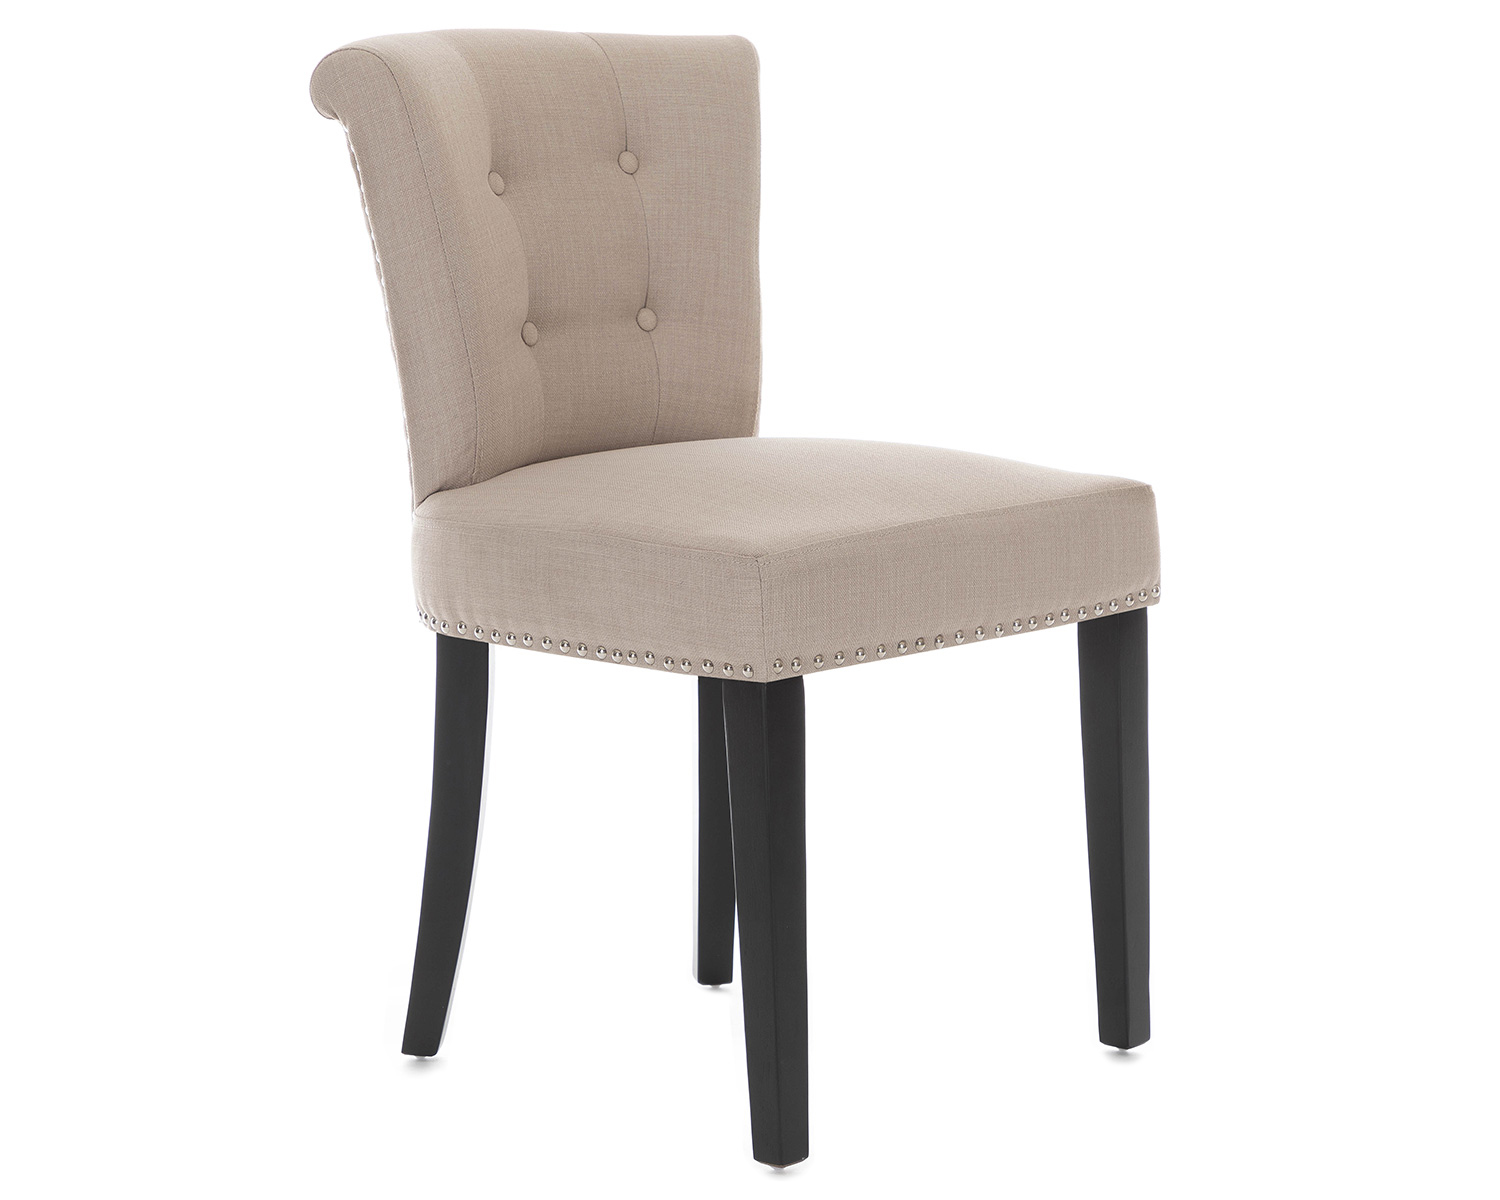 Grey Velvet High Back Dining Chairs: X 2 Camden Velvet Or Linen Dining Chair Grey Cream With